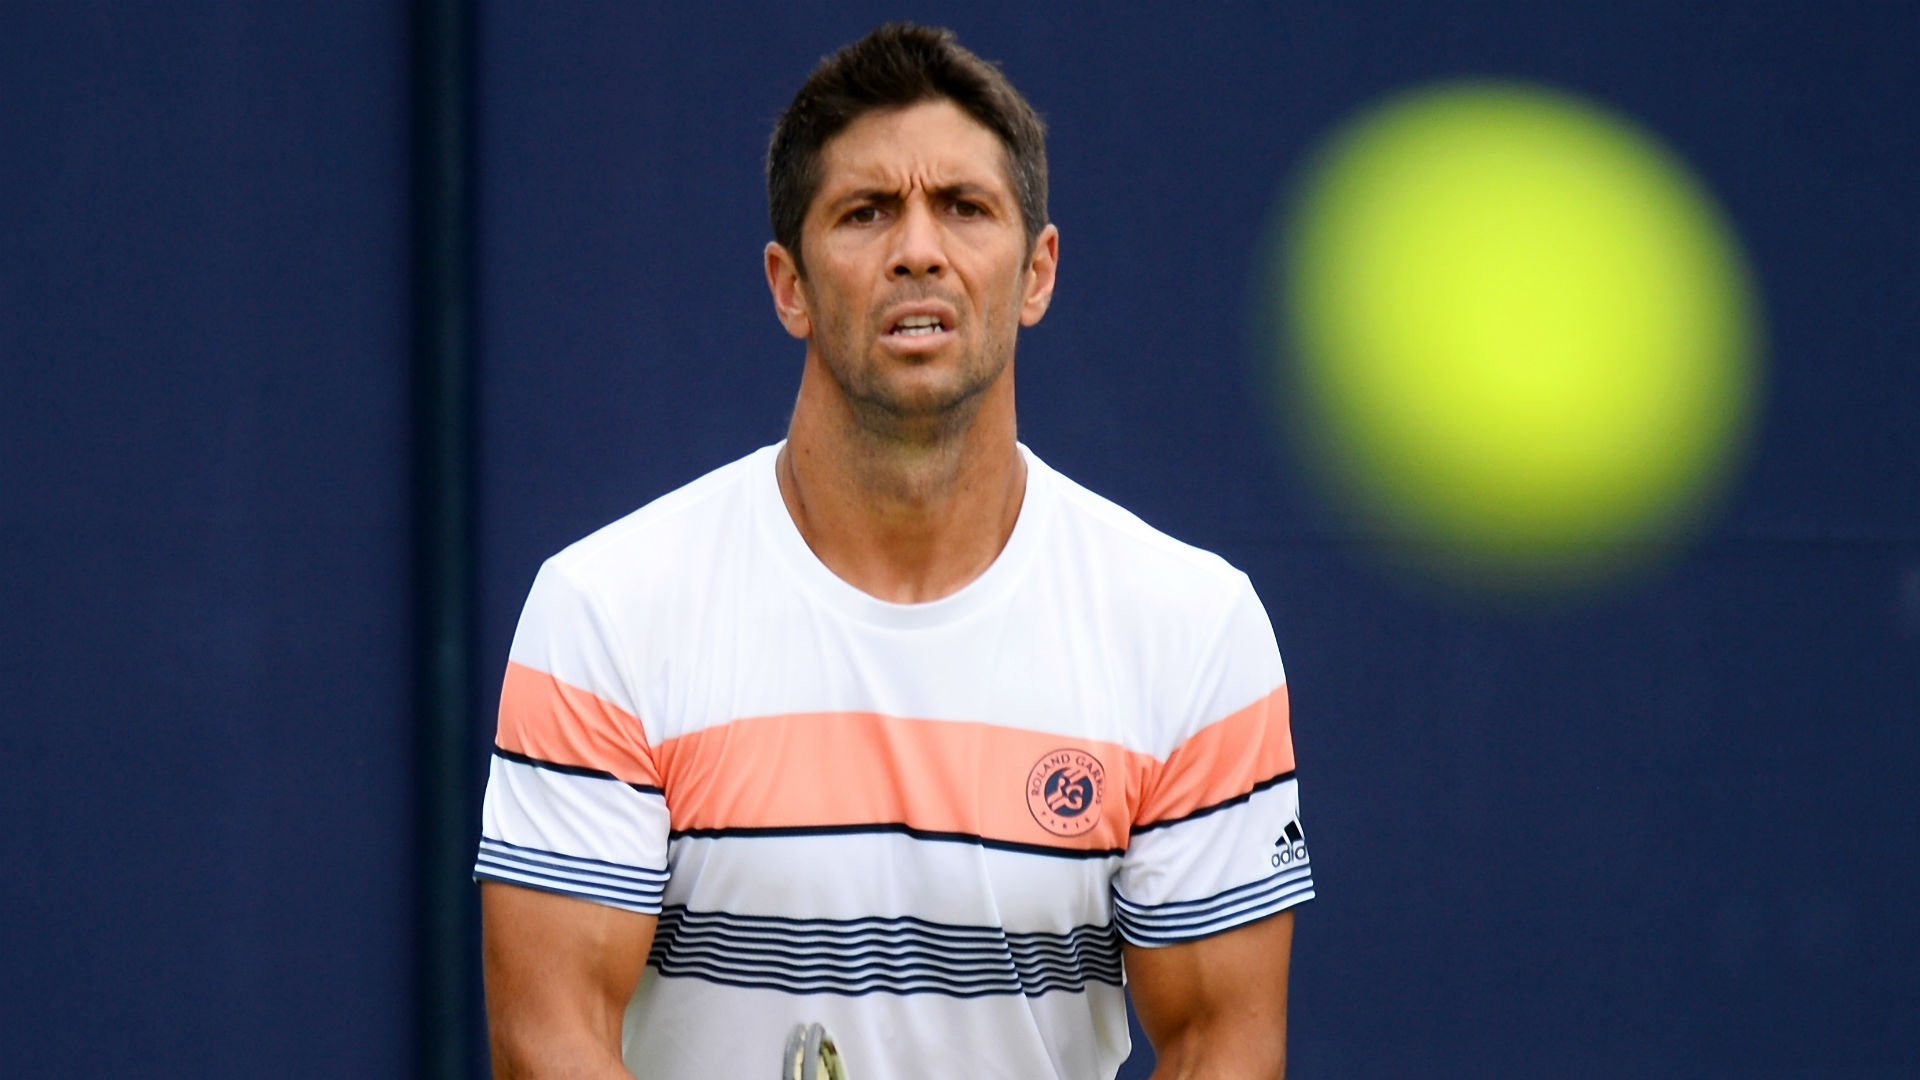 Verdasco, Gasquet advance but Ruud's run is over in Bastad